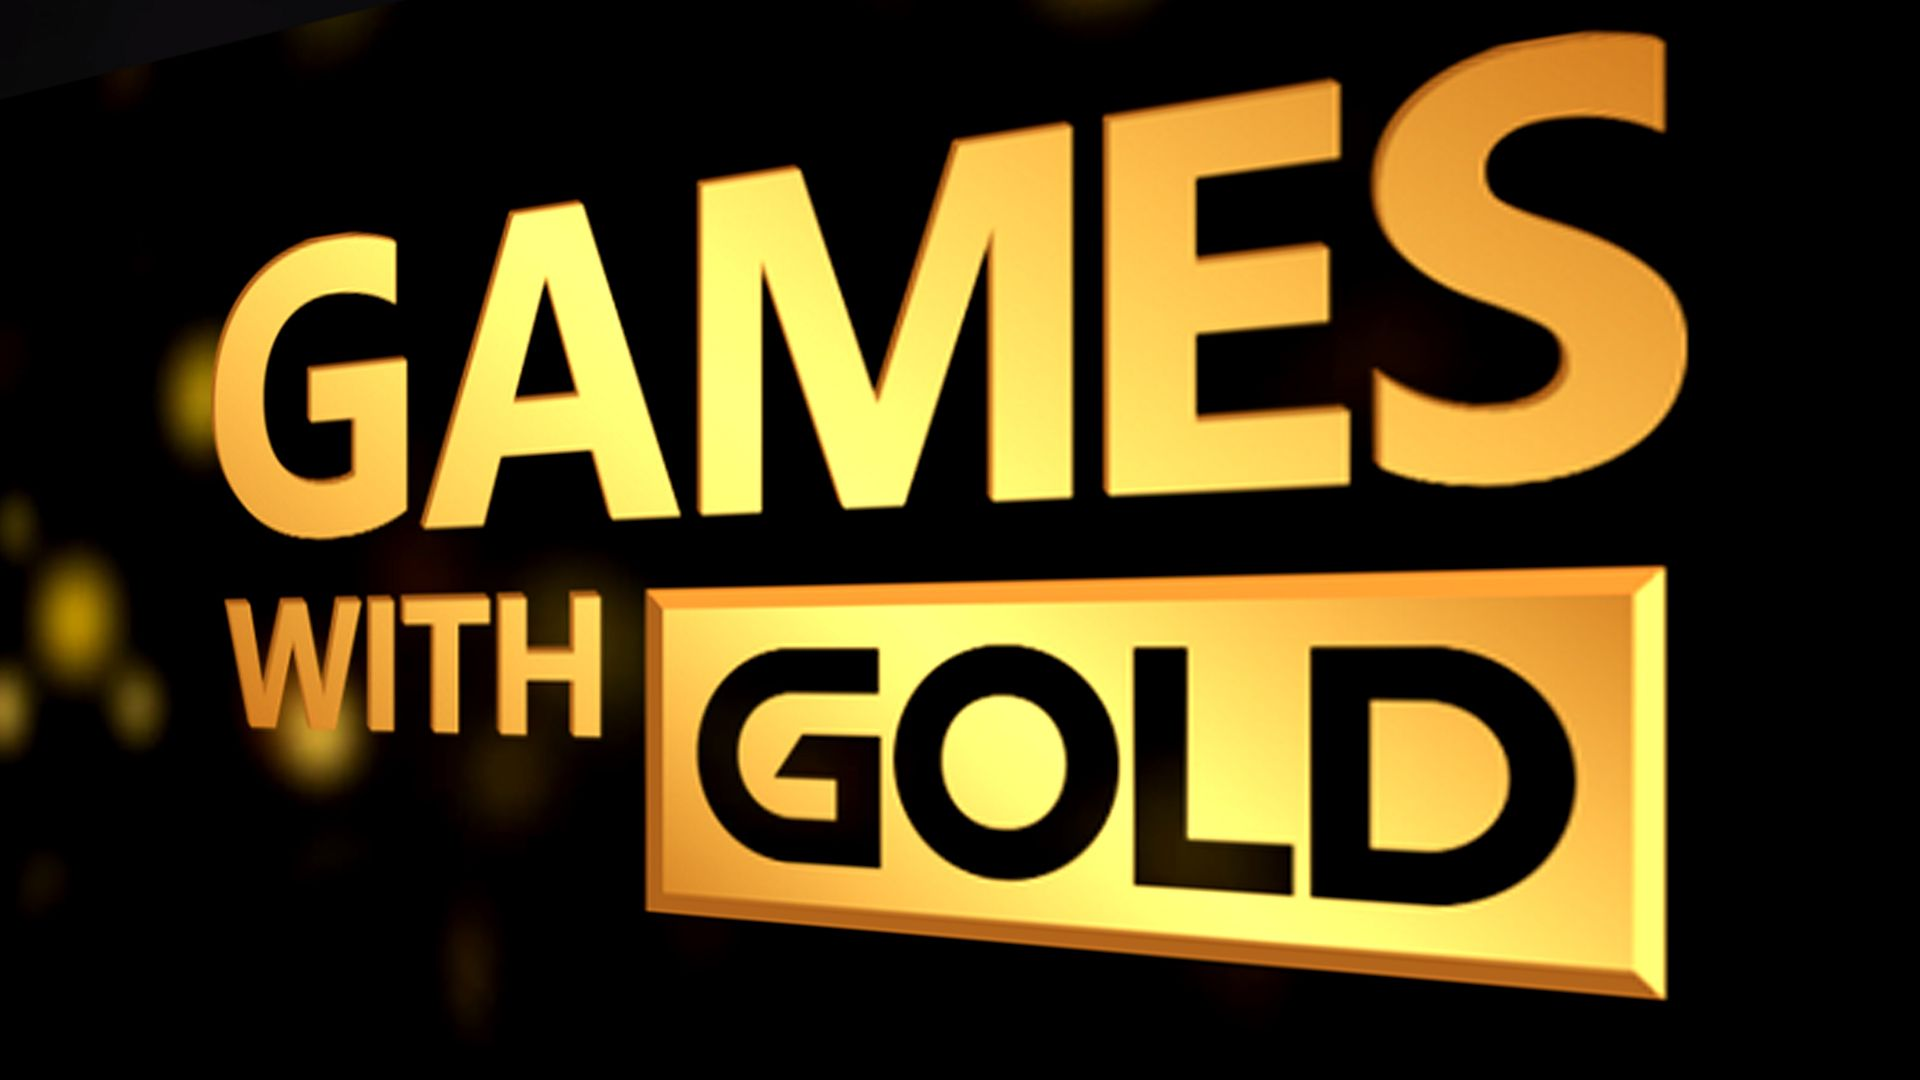 /xbox-free-games-with-gold-and-xbox-live-update-may-2021-at1d24g0 feature image